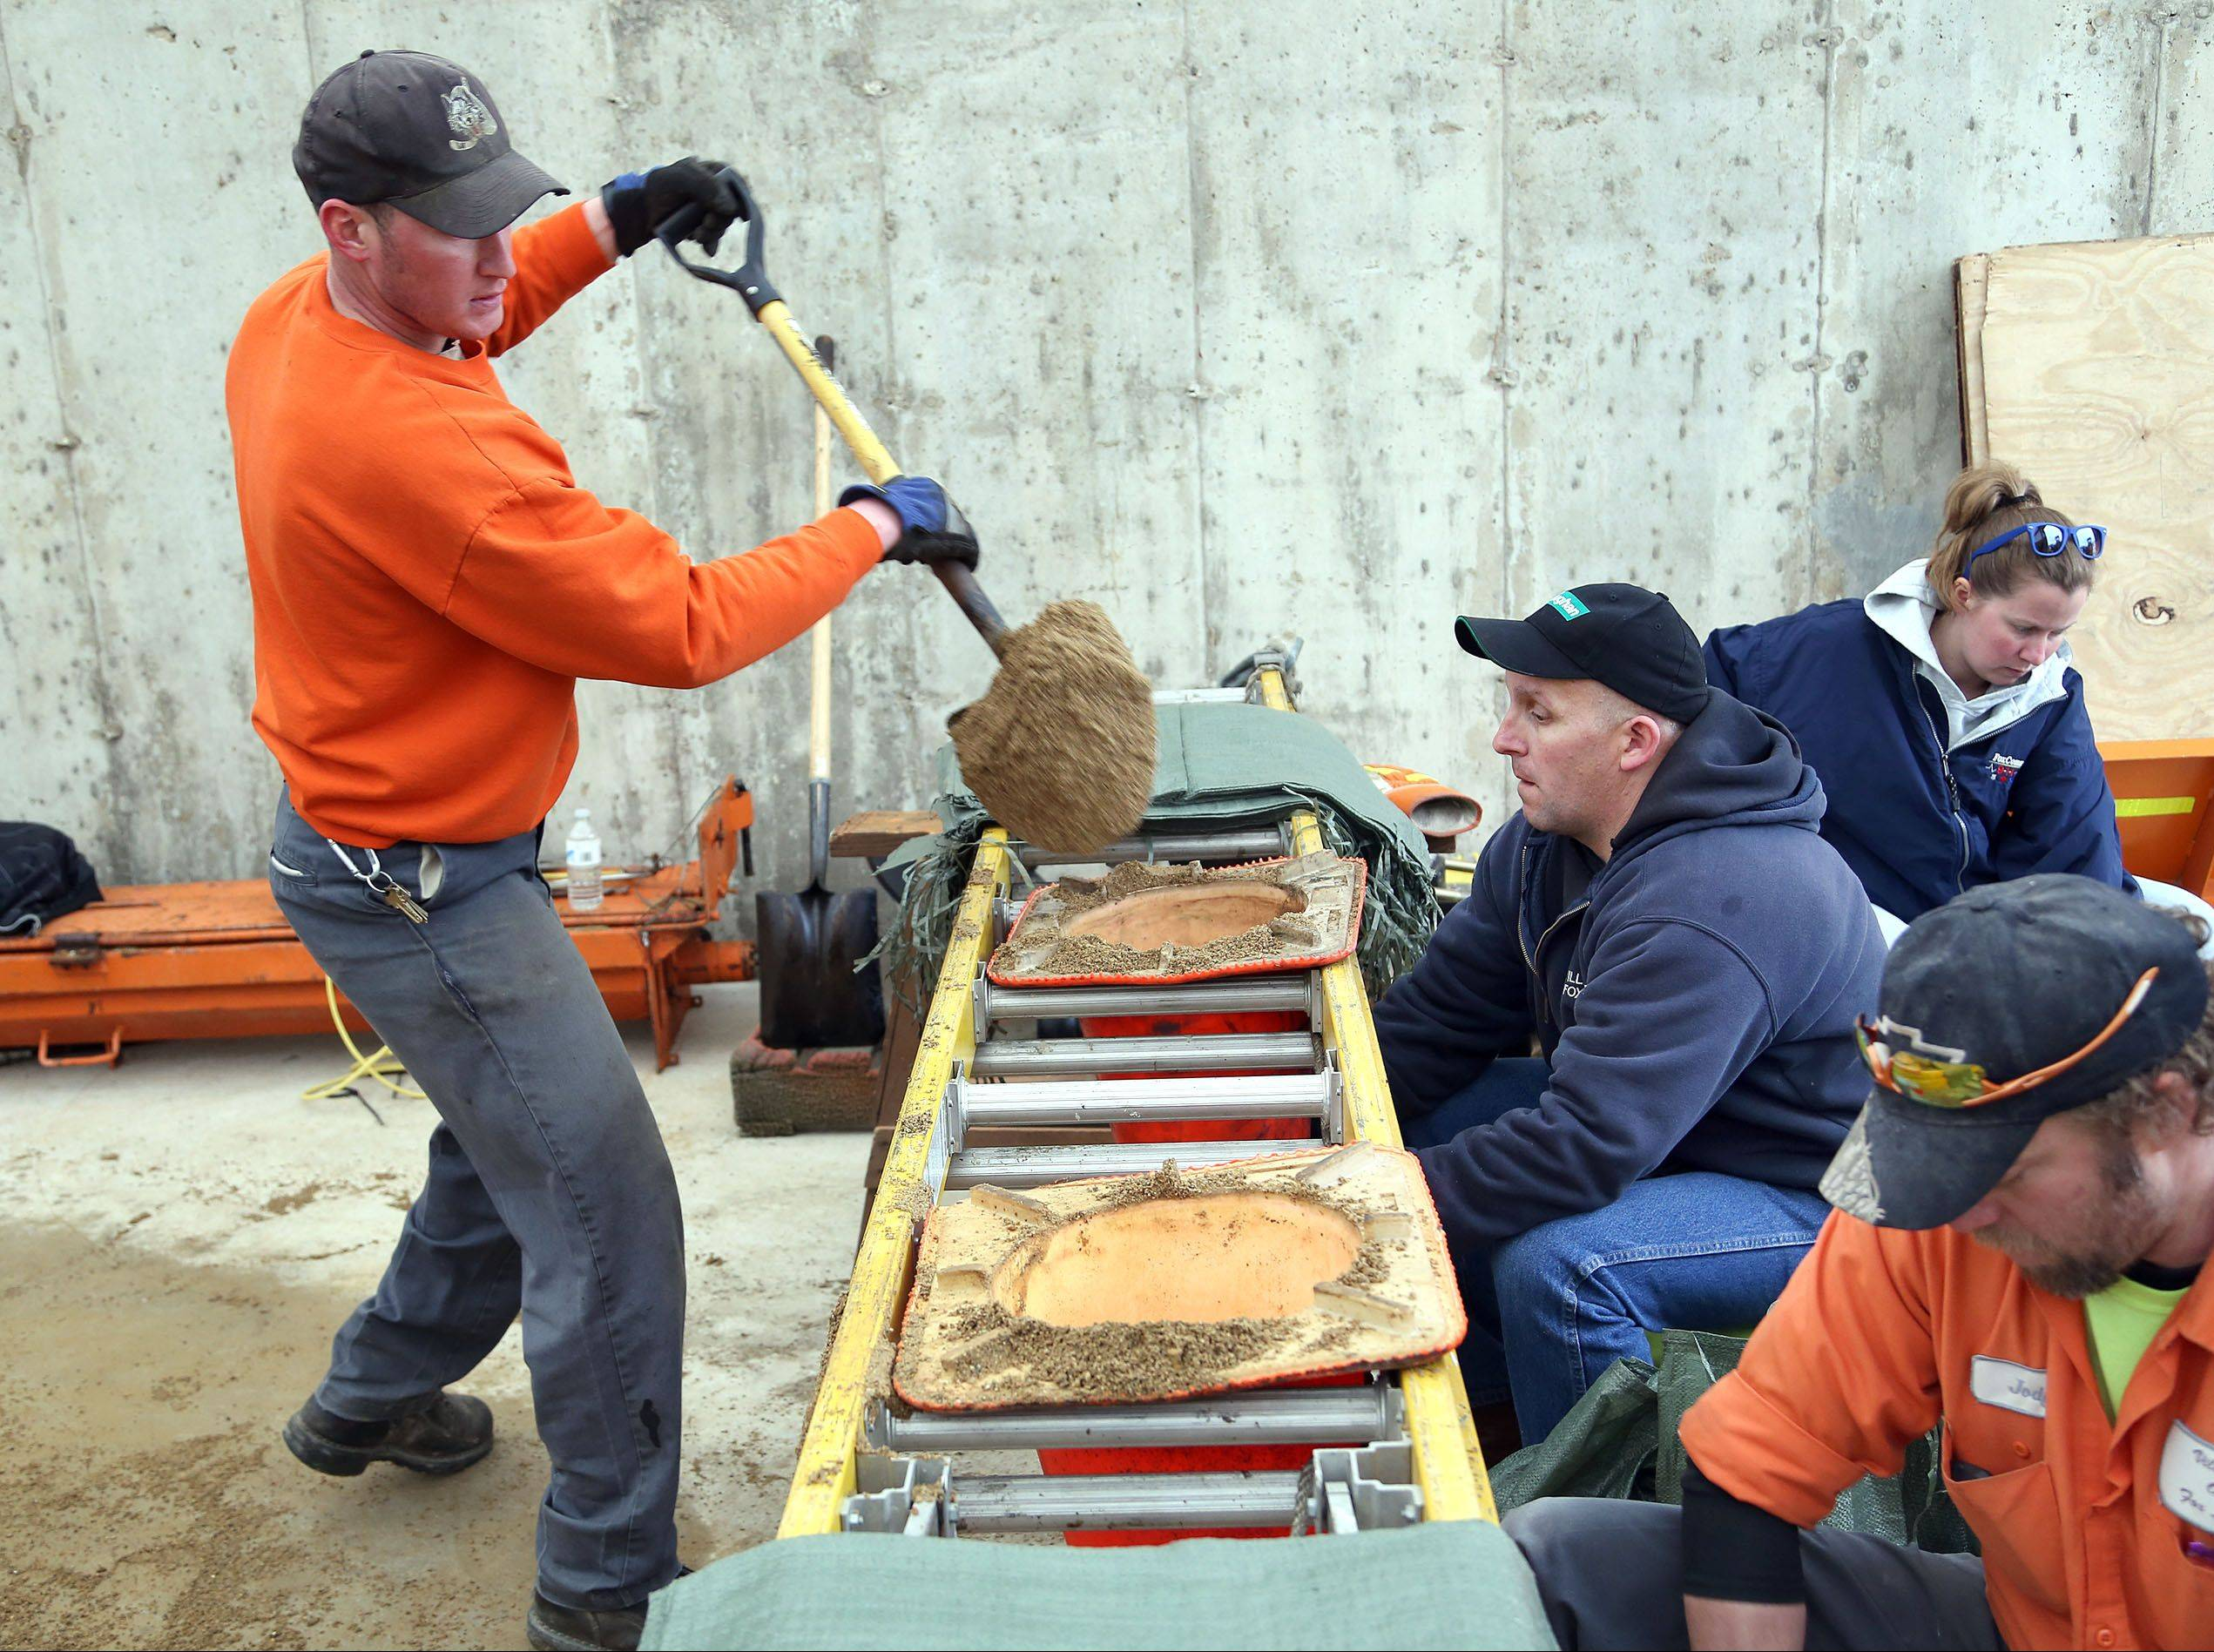 Dan Kattner, left, of the Fox Lake Street Department, and Matt Wood, of Fox Lake Water Treatment Plant, fill sandbags at the Fox Lake Public Works Department on April 12. Early reports suggest the cost to the county is more than $4.36 million, which would make it eligible for federal funds should a federal disaster declaration be made.